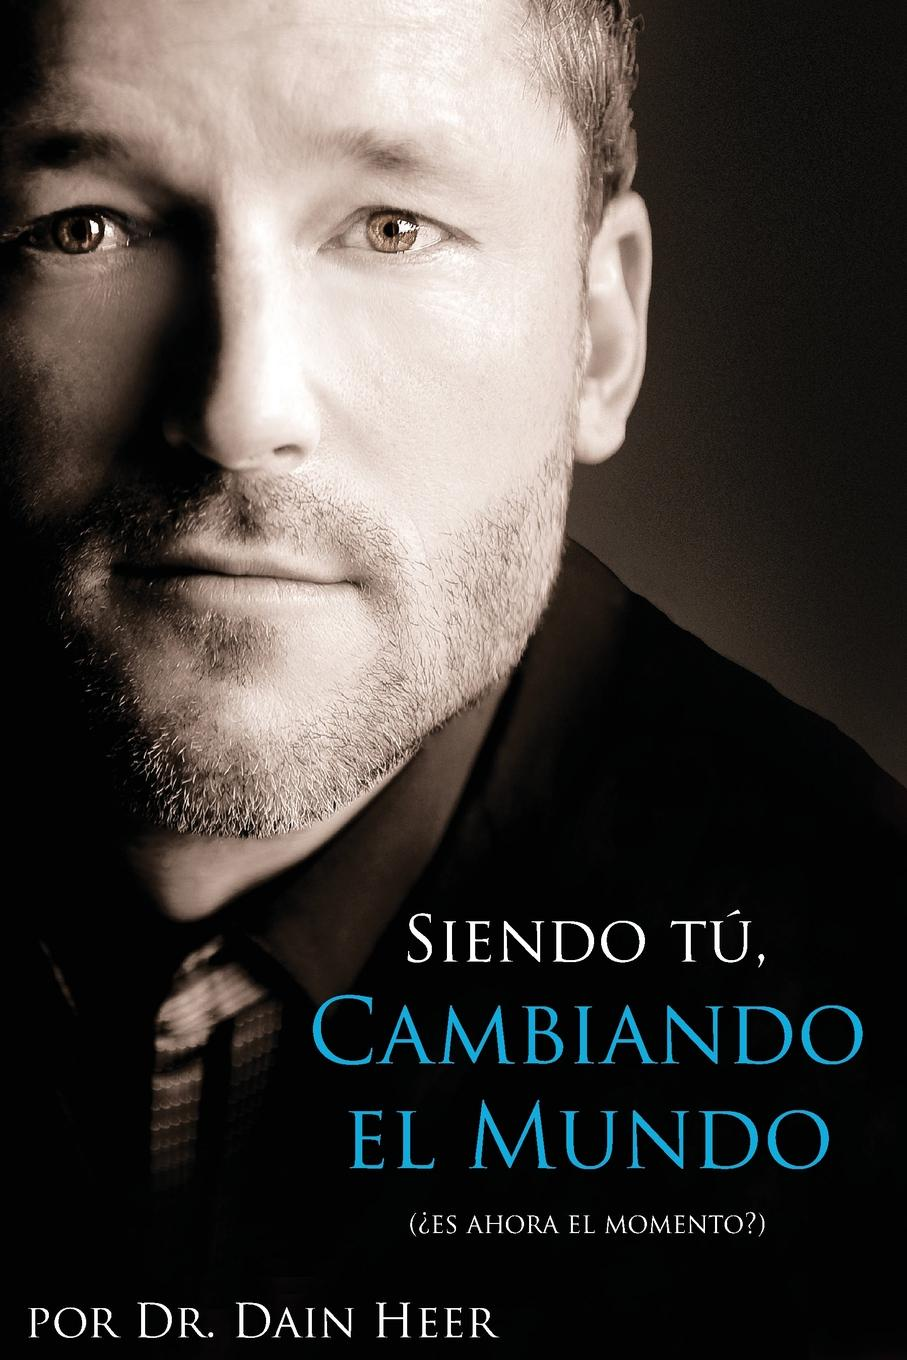 Dr. Dain Heer Siendo Tu, Cambiando El Mundo - Being You, Changing the World Spanish platero y yo